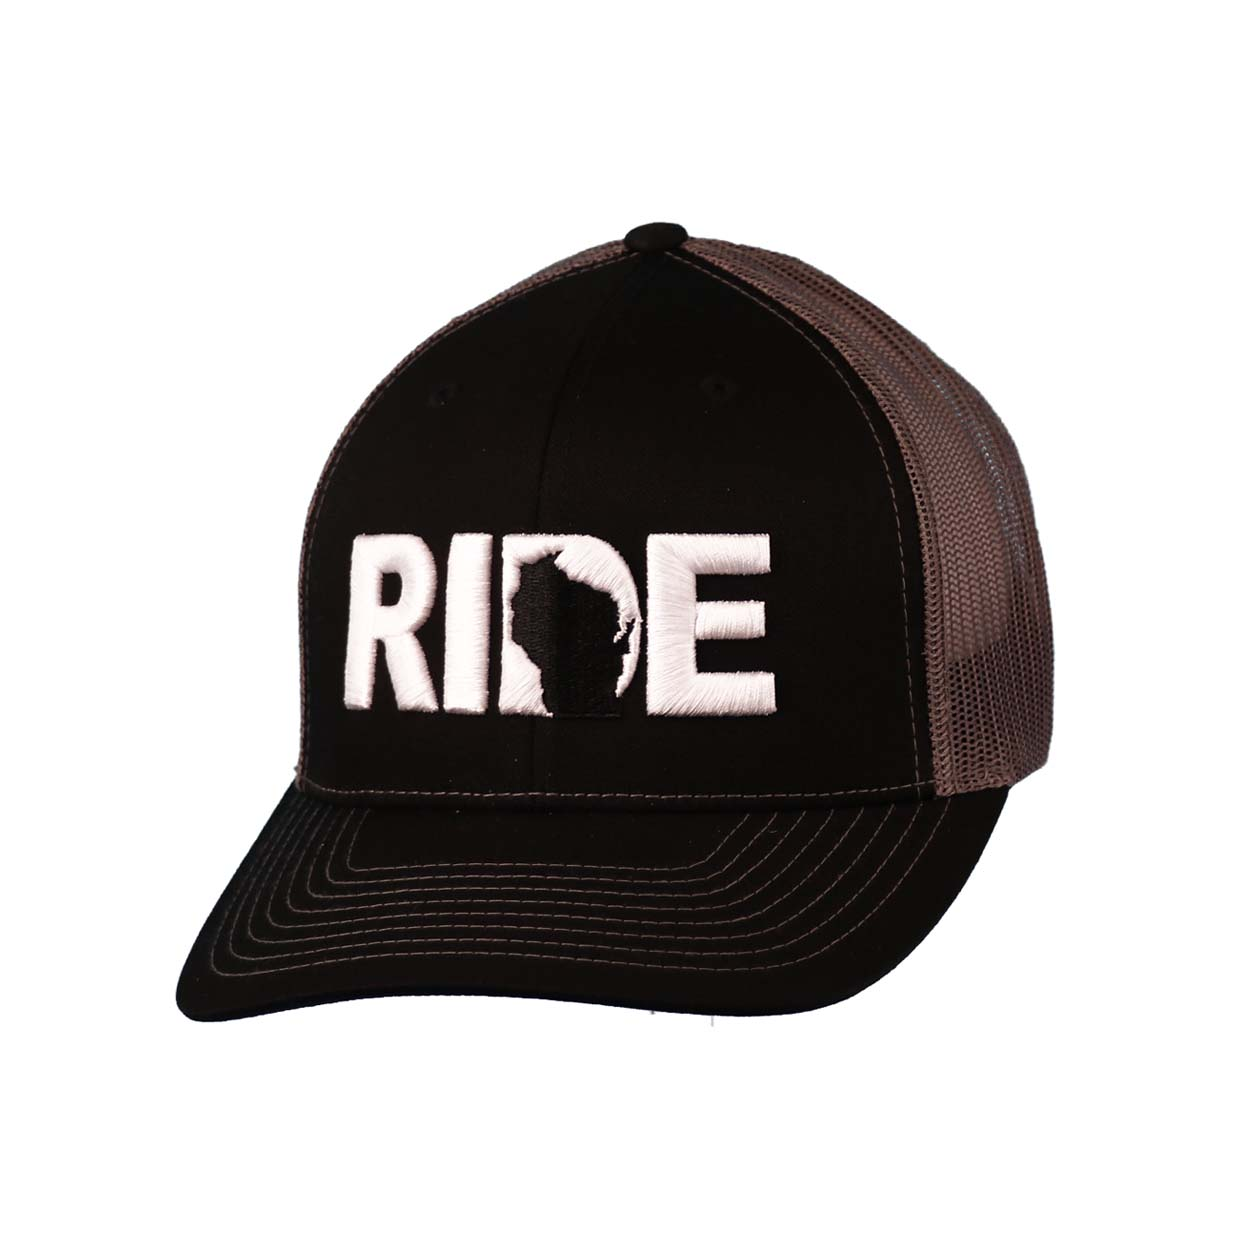 Ride Wisconsin Classic Embroidered Snapback Trucker Hat Black/White